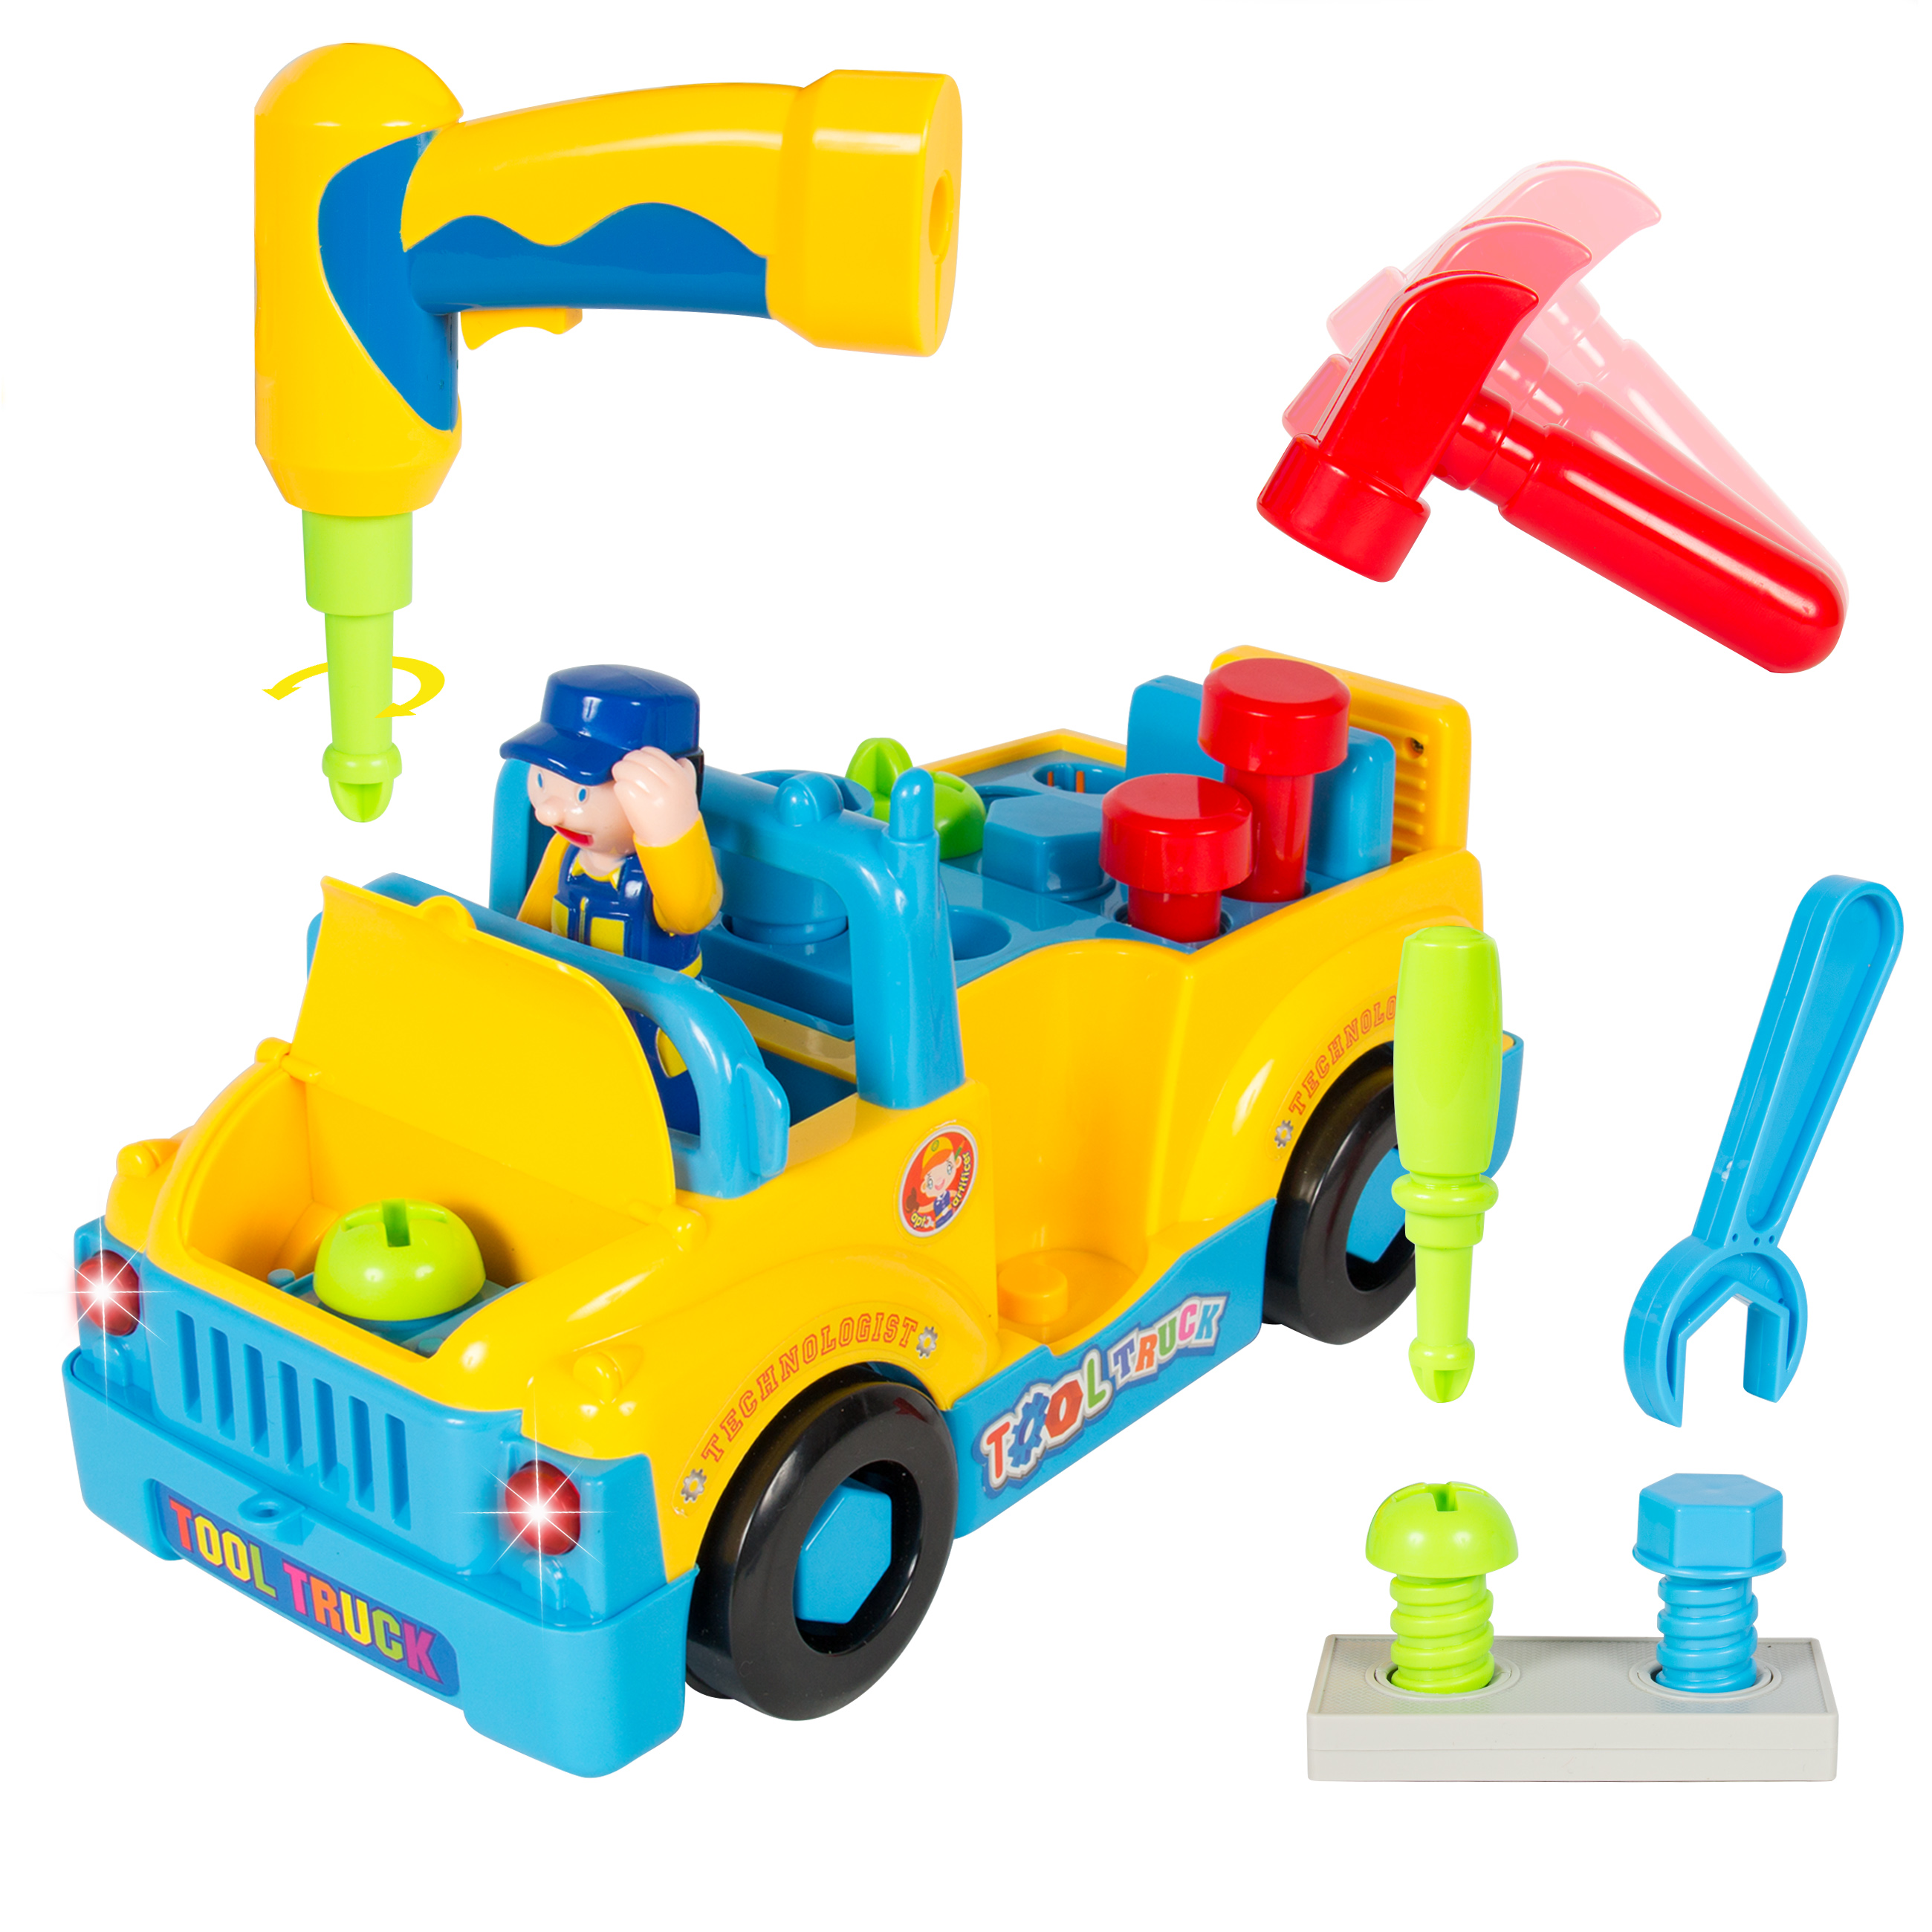 Best Choice Products Bump'n'Go Toy Truck With Electric Drill and Various Tools, Lights and Music